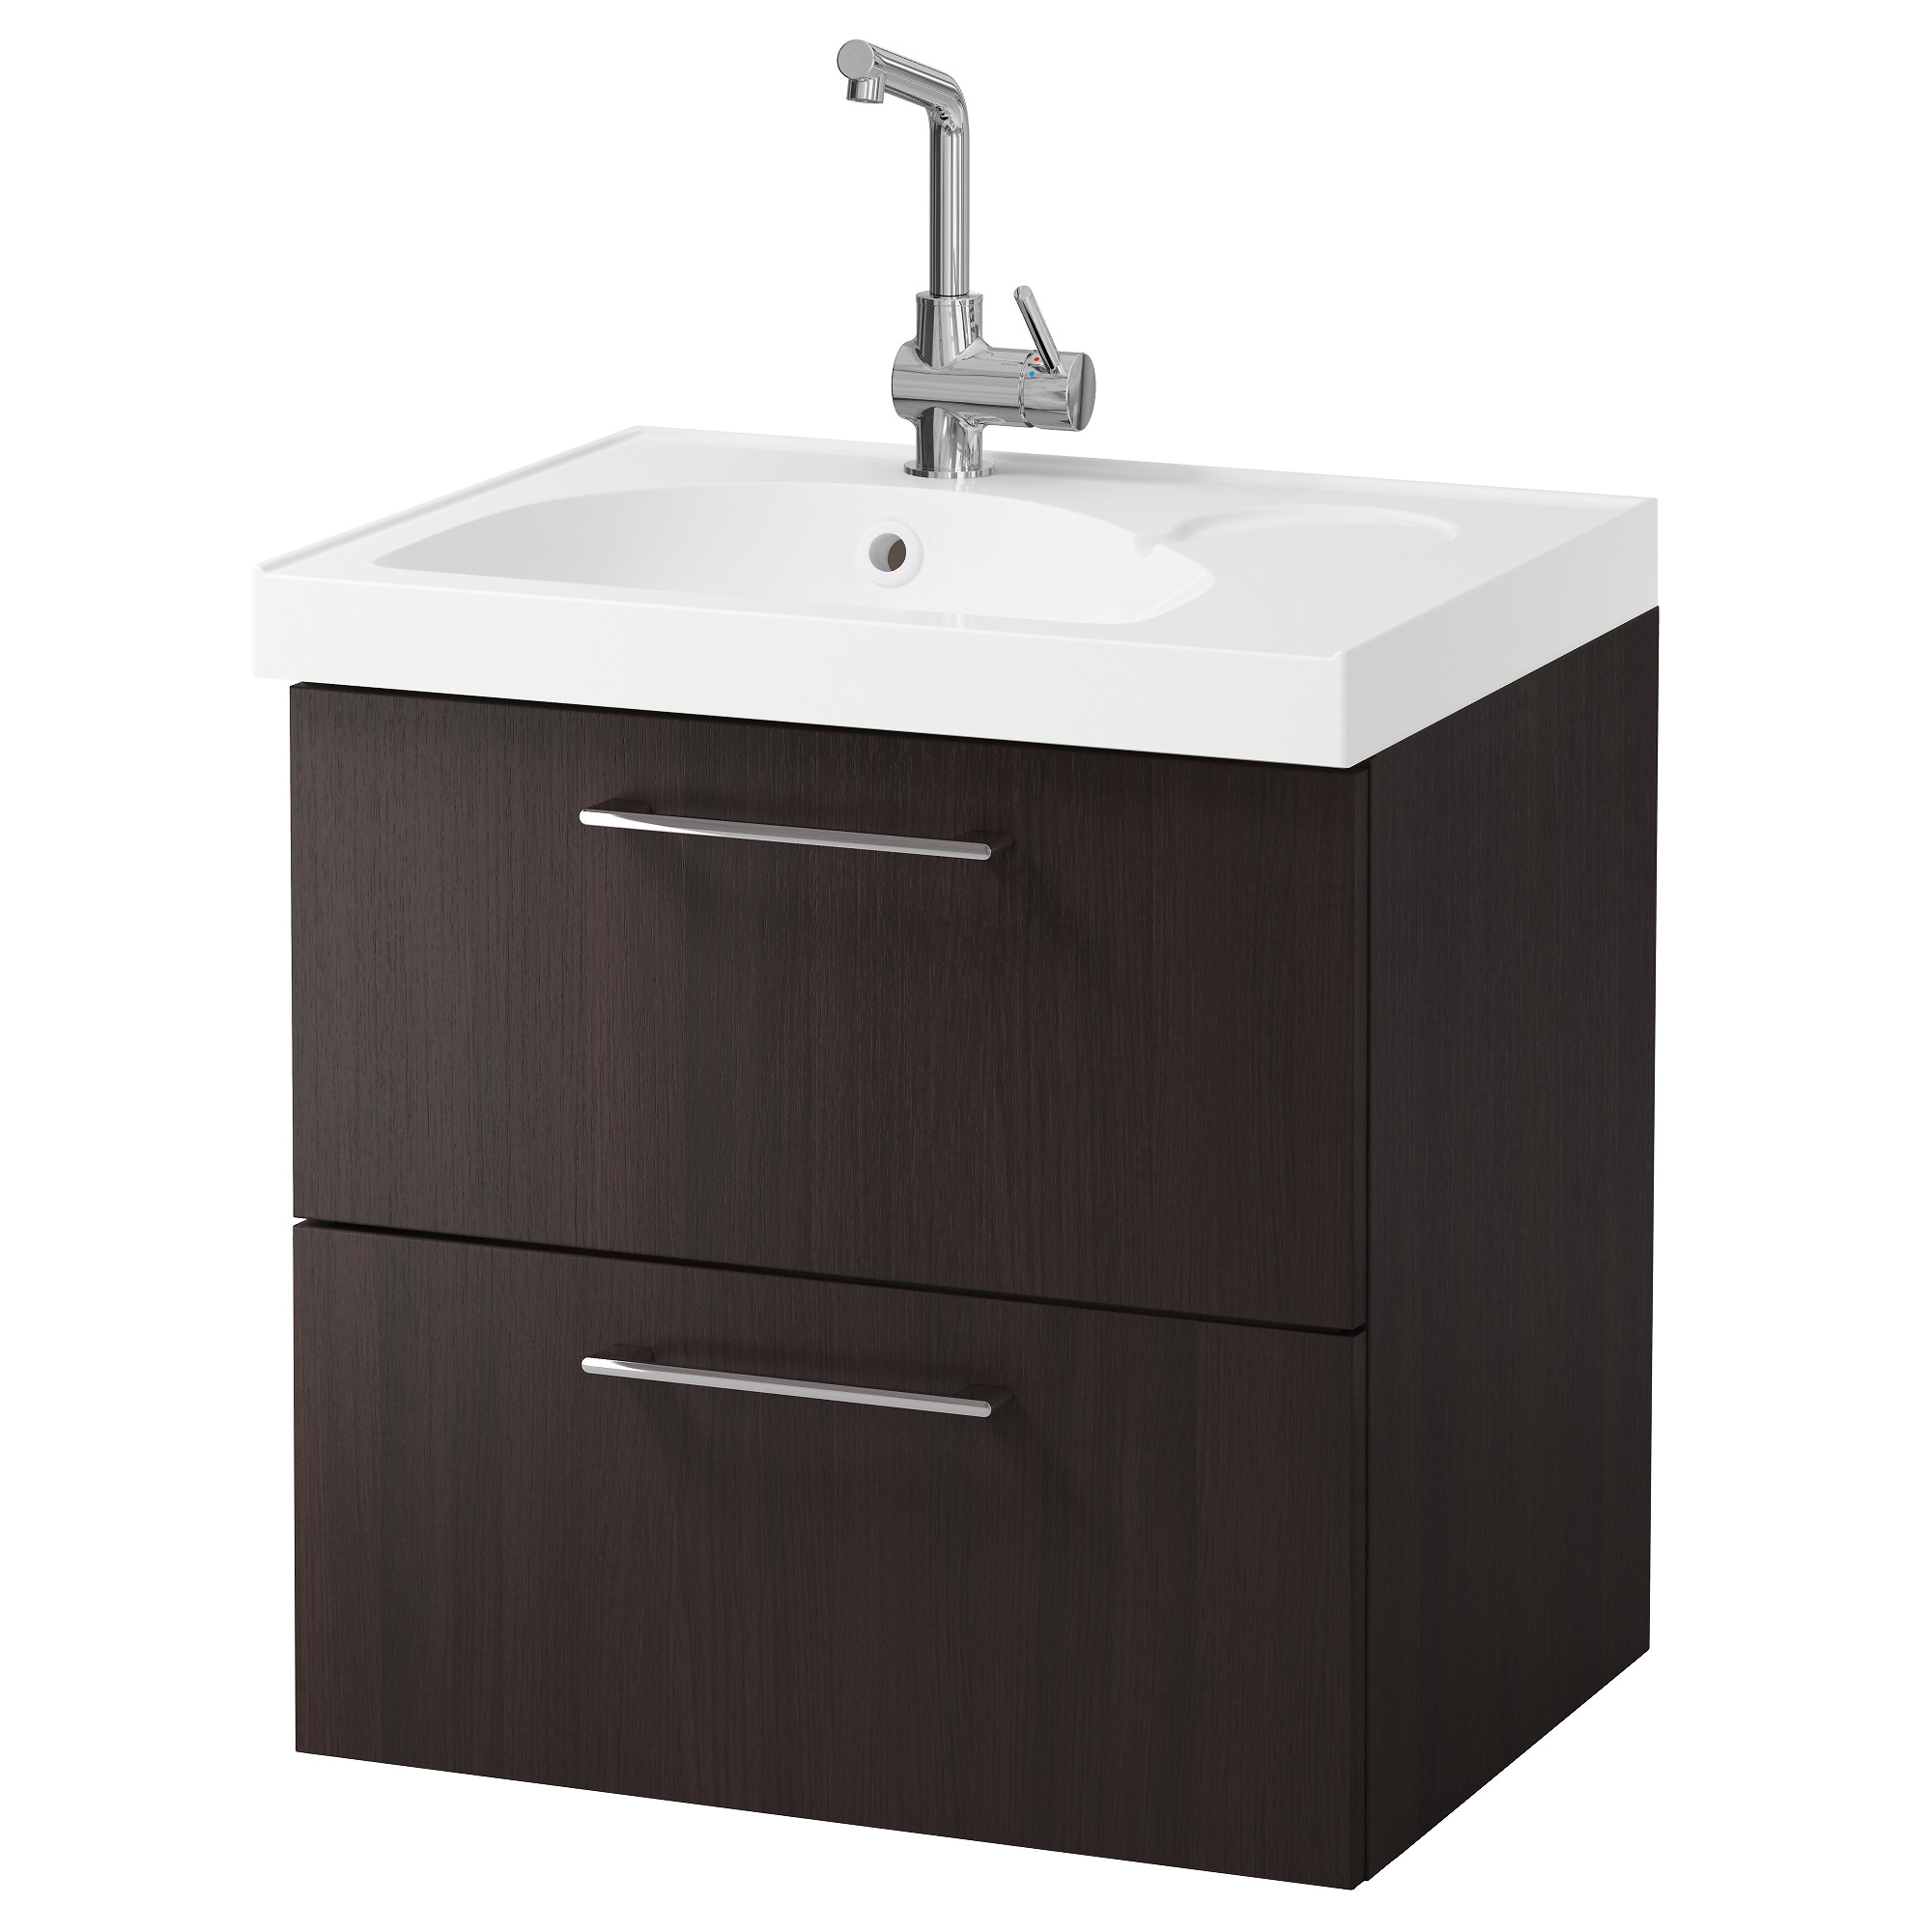 Bathroom sink cabinets ikea - Godmorgon Edeboviken Sink Cabinet With 2 Drawers Black Brown Width 24 3